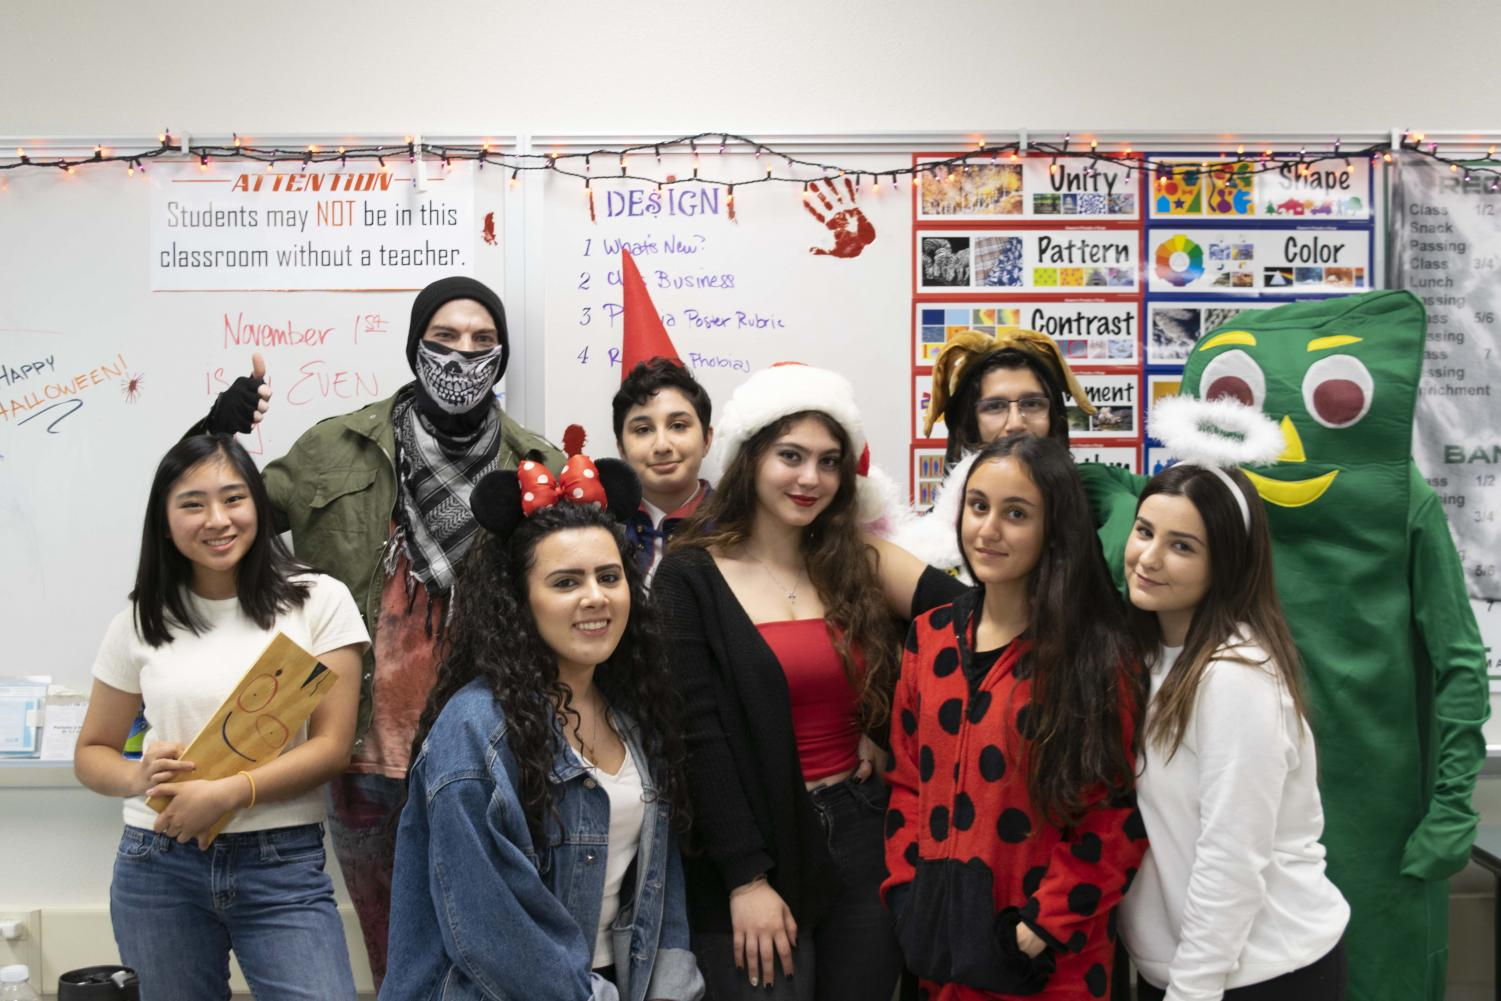 Mr.+Kursinski+and+his+students+show+off+their+Halloween+costumes.